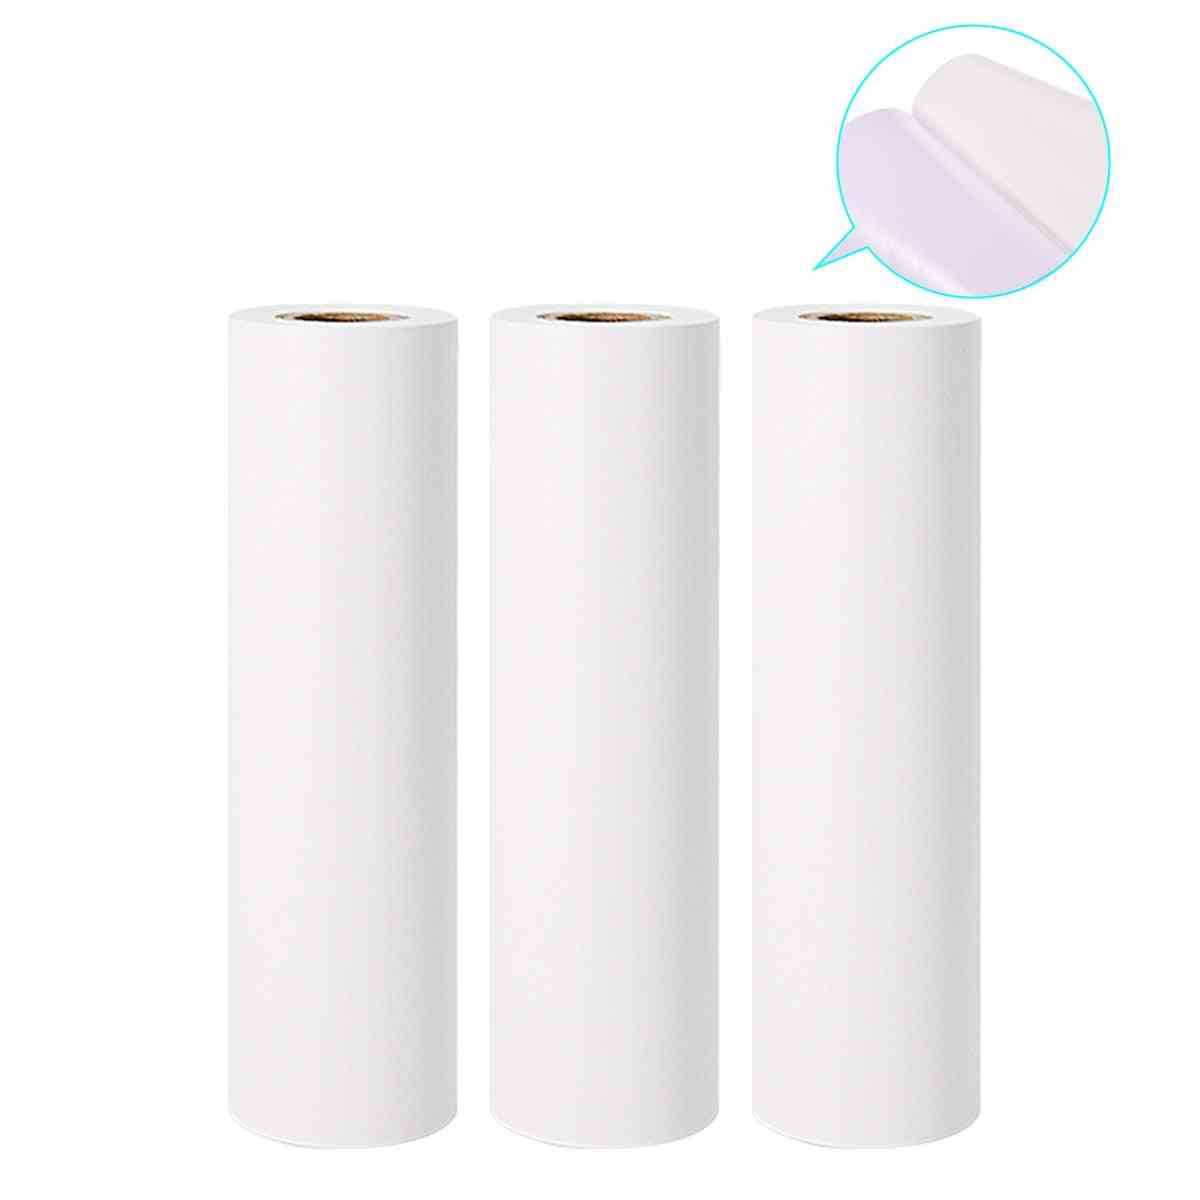 White Self-adhesive Thermal Paper Roll Printable Sticker